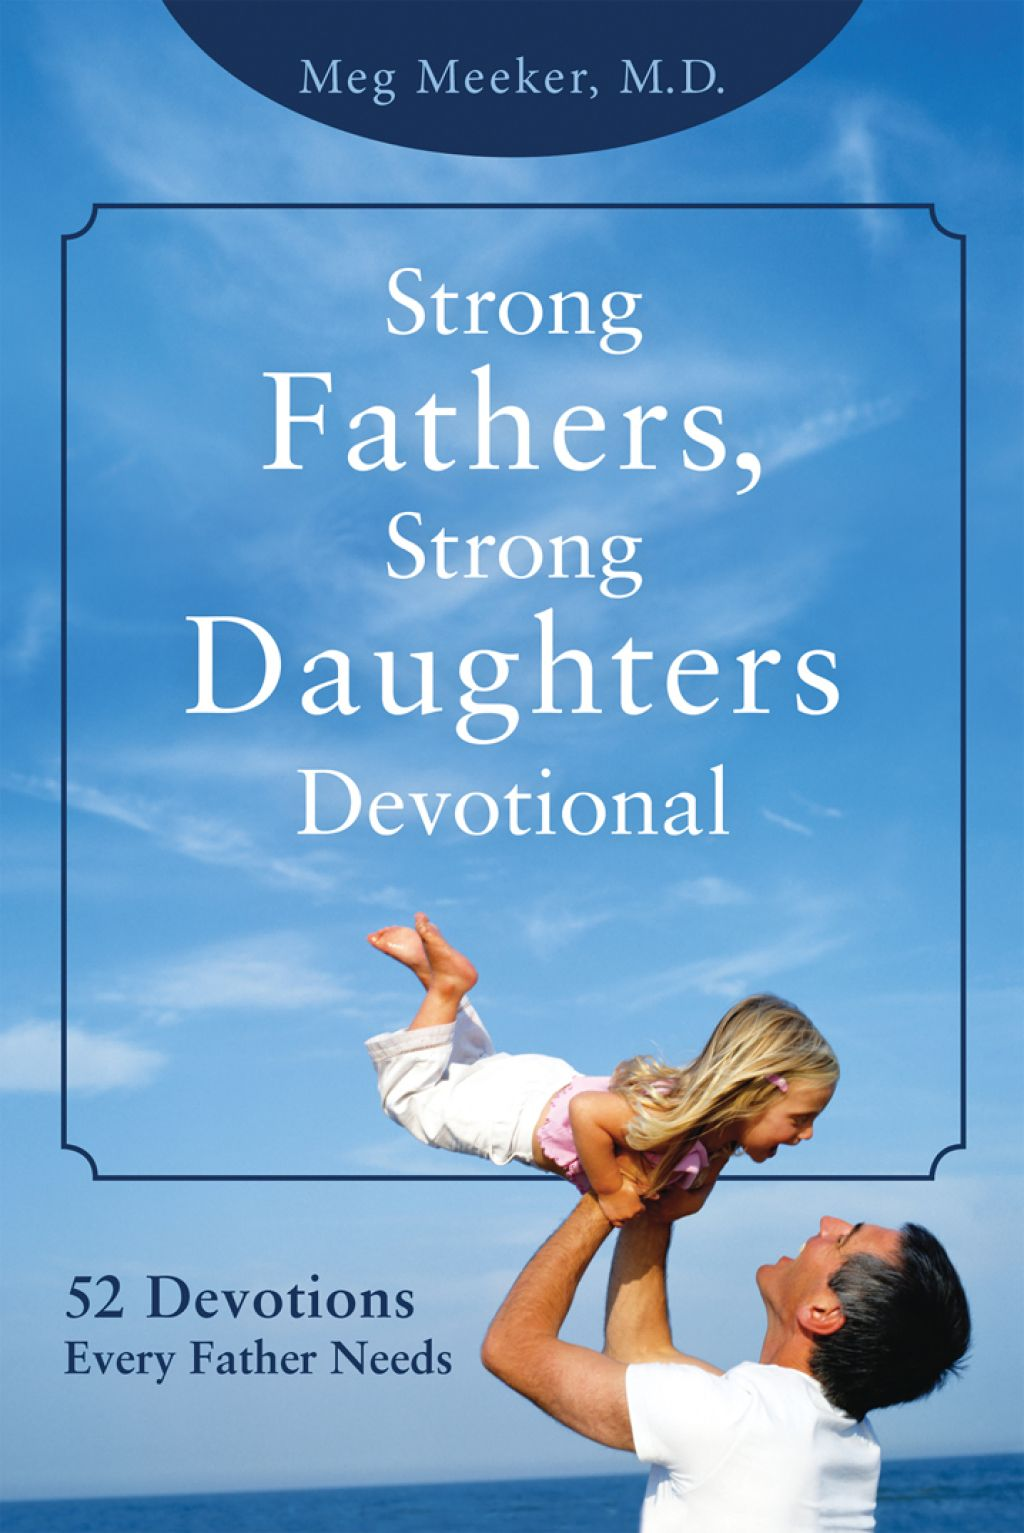 46+ Fathers and daughters based on book information